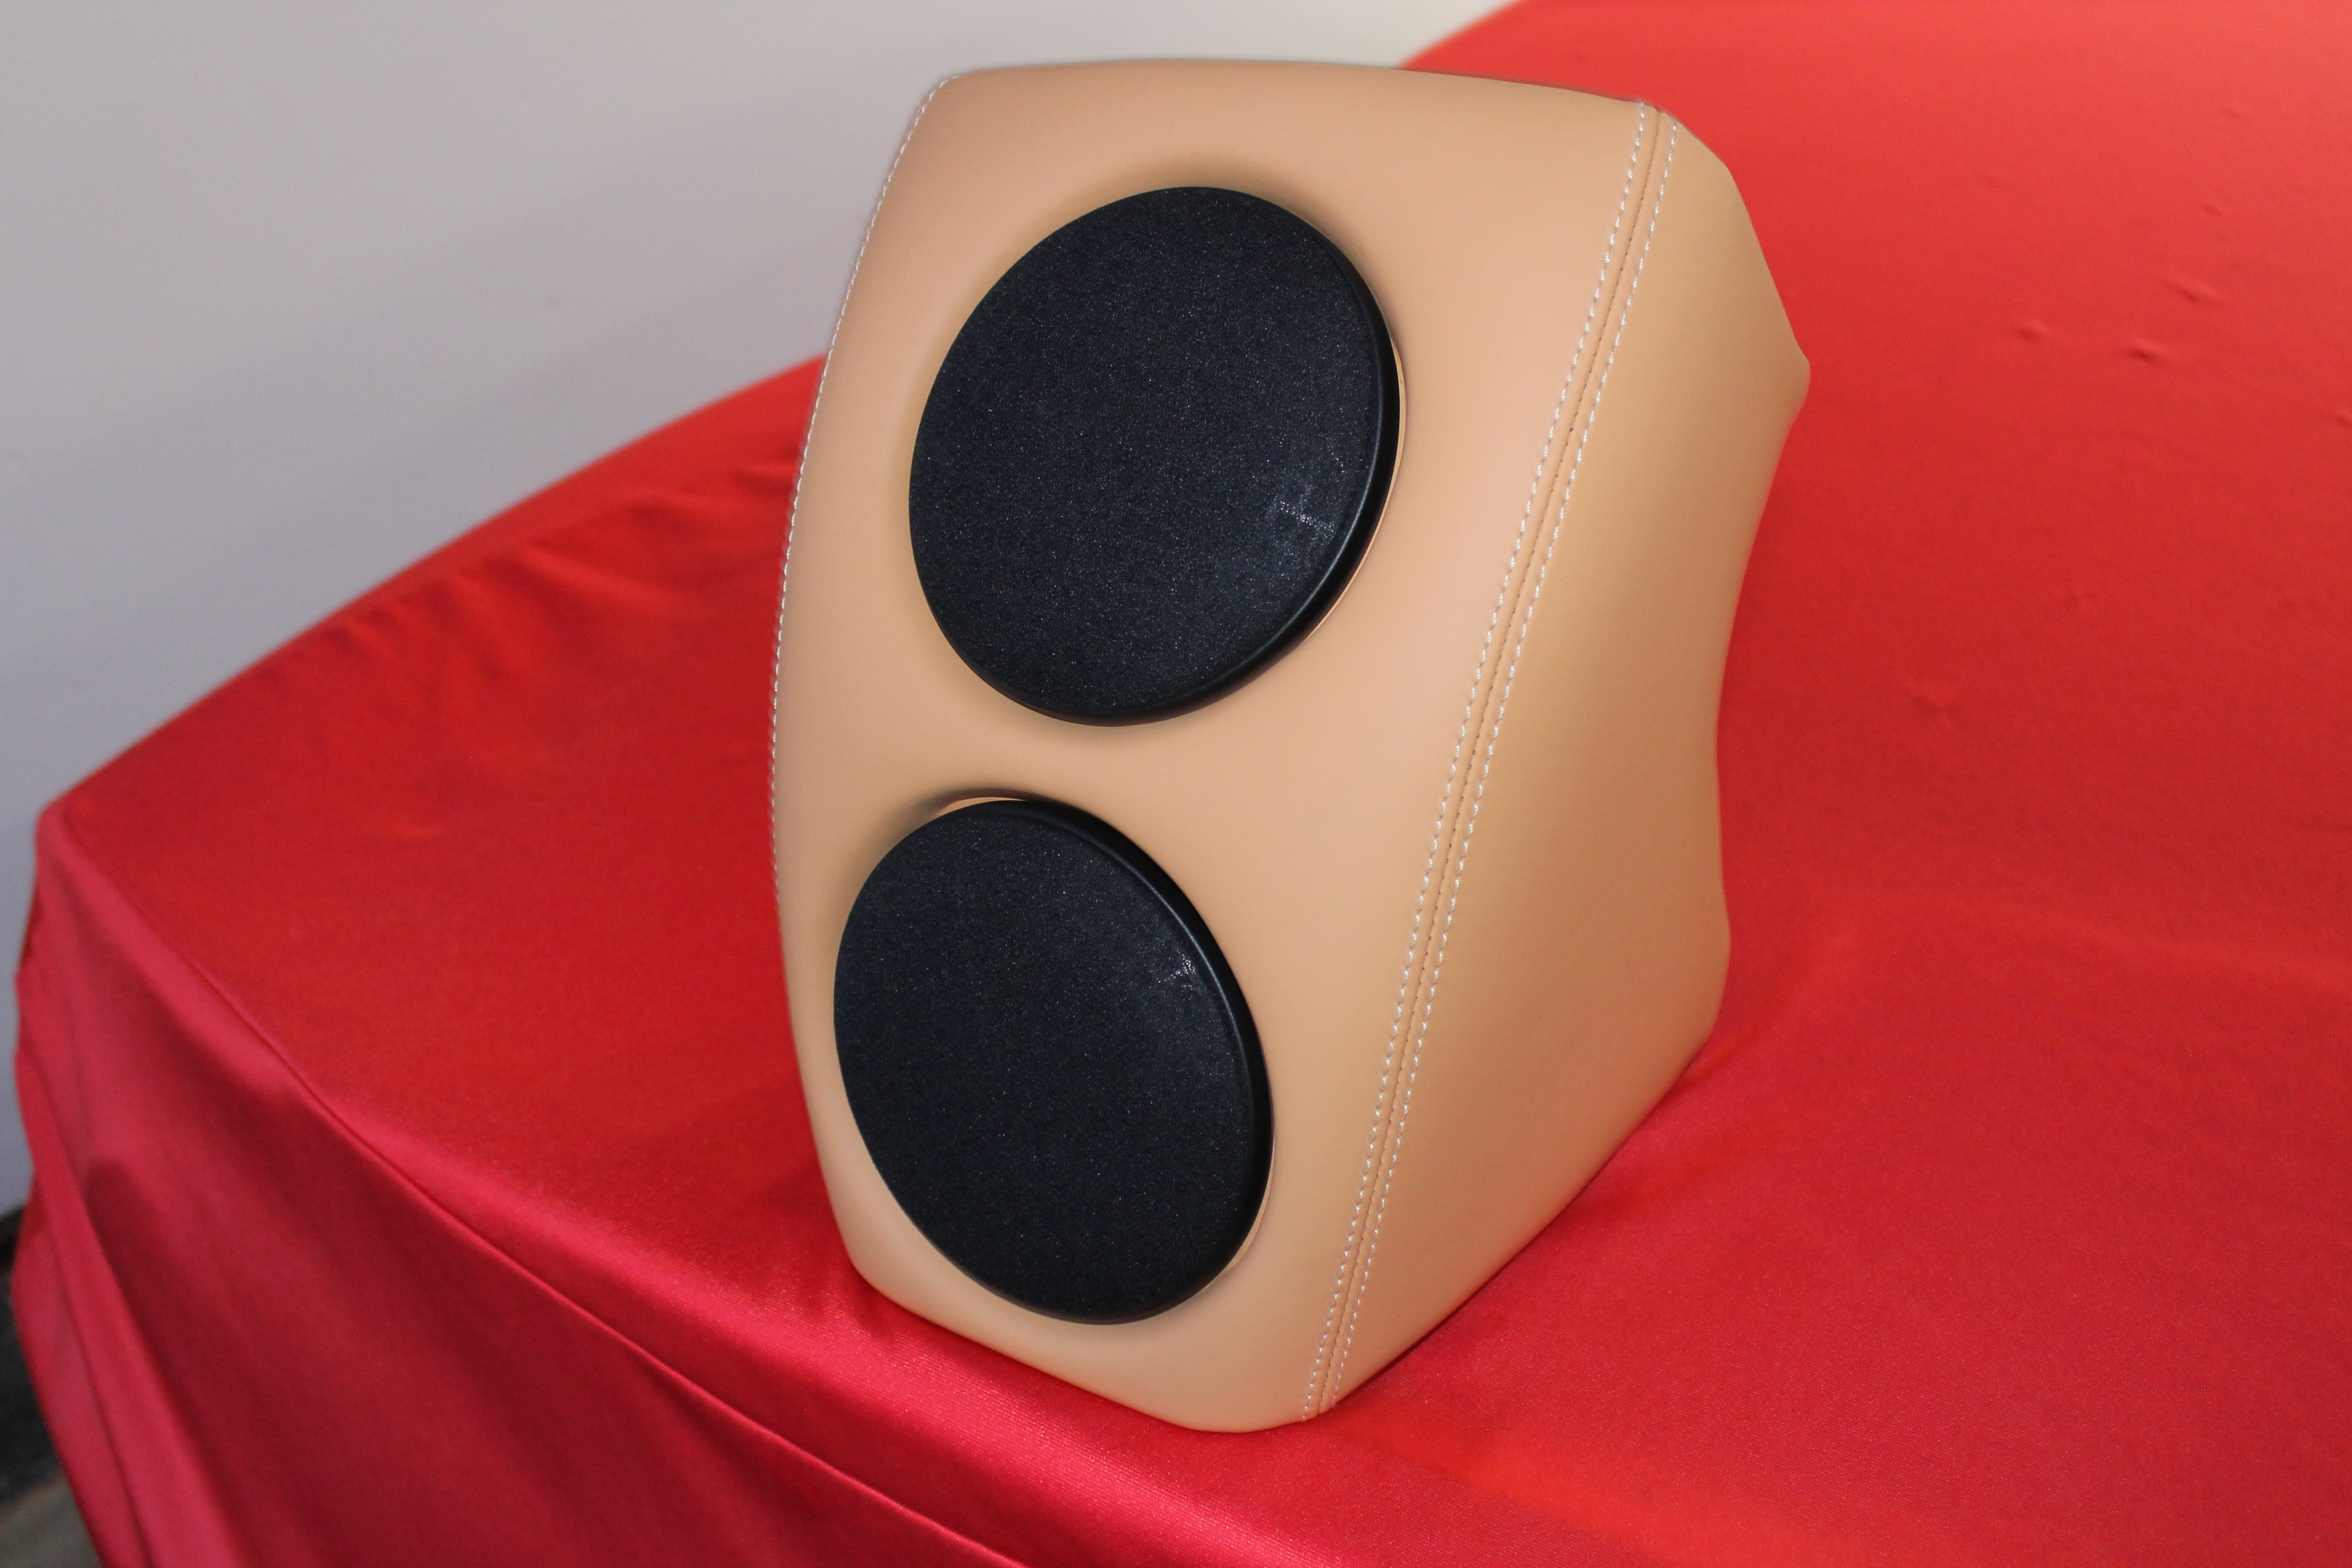 Ferrari Car Stereo Audio Speaker Sound System